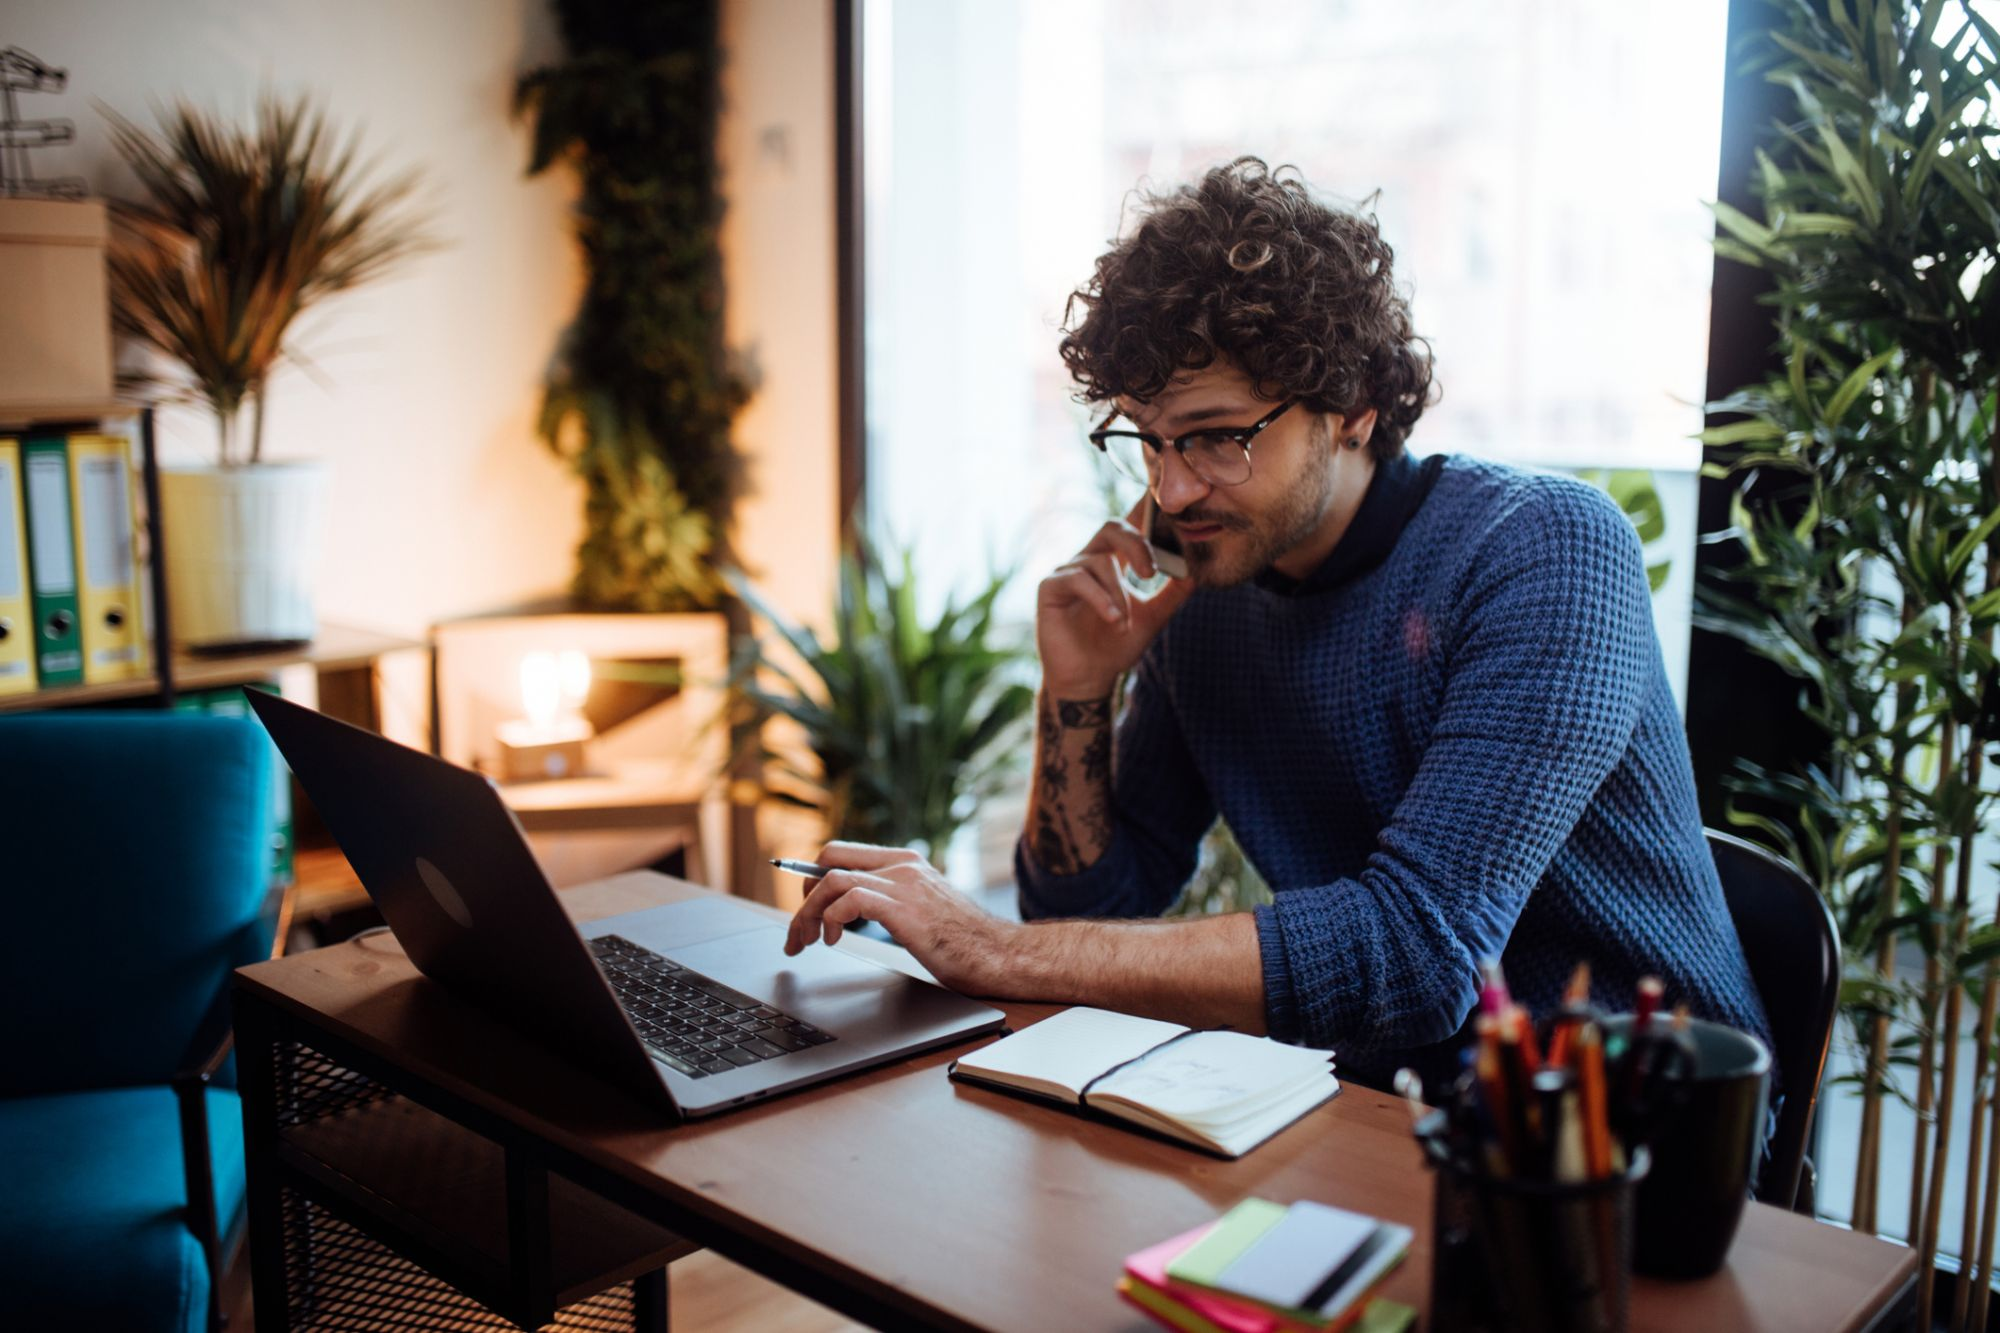 Coronavirus: Best Practices for Working From Home, According to a Six-Figure Social Media Entrepreneur